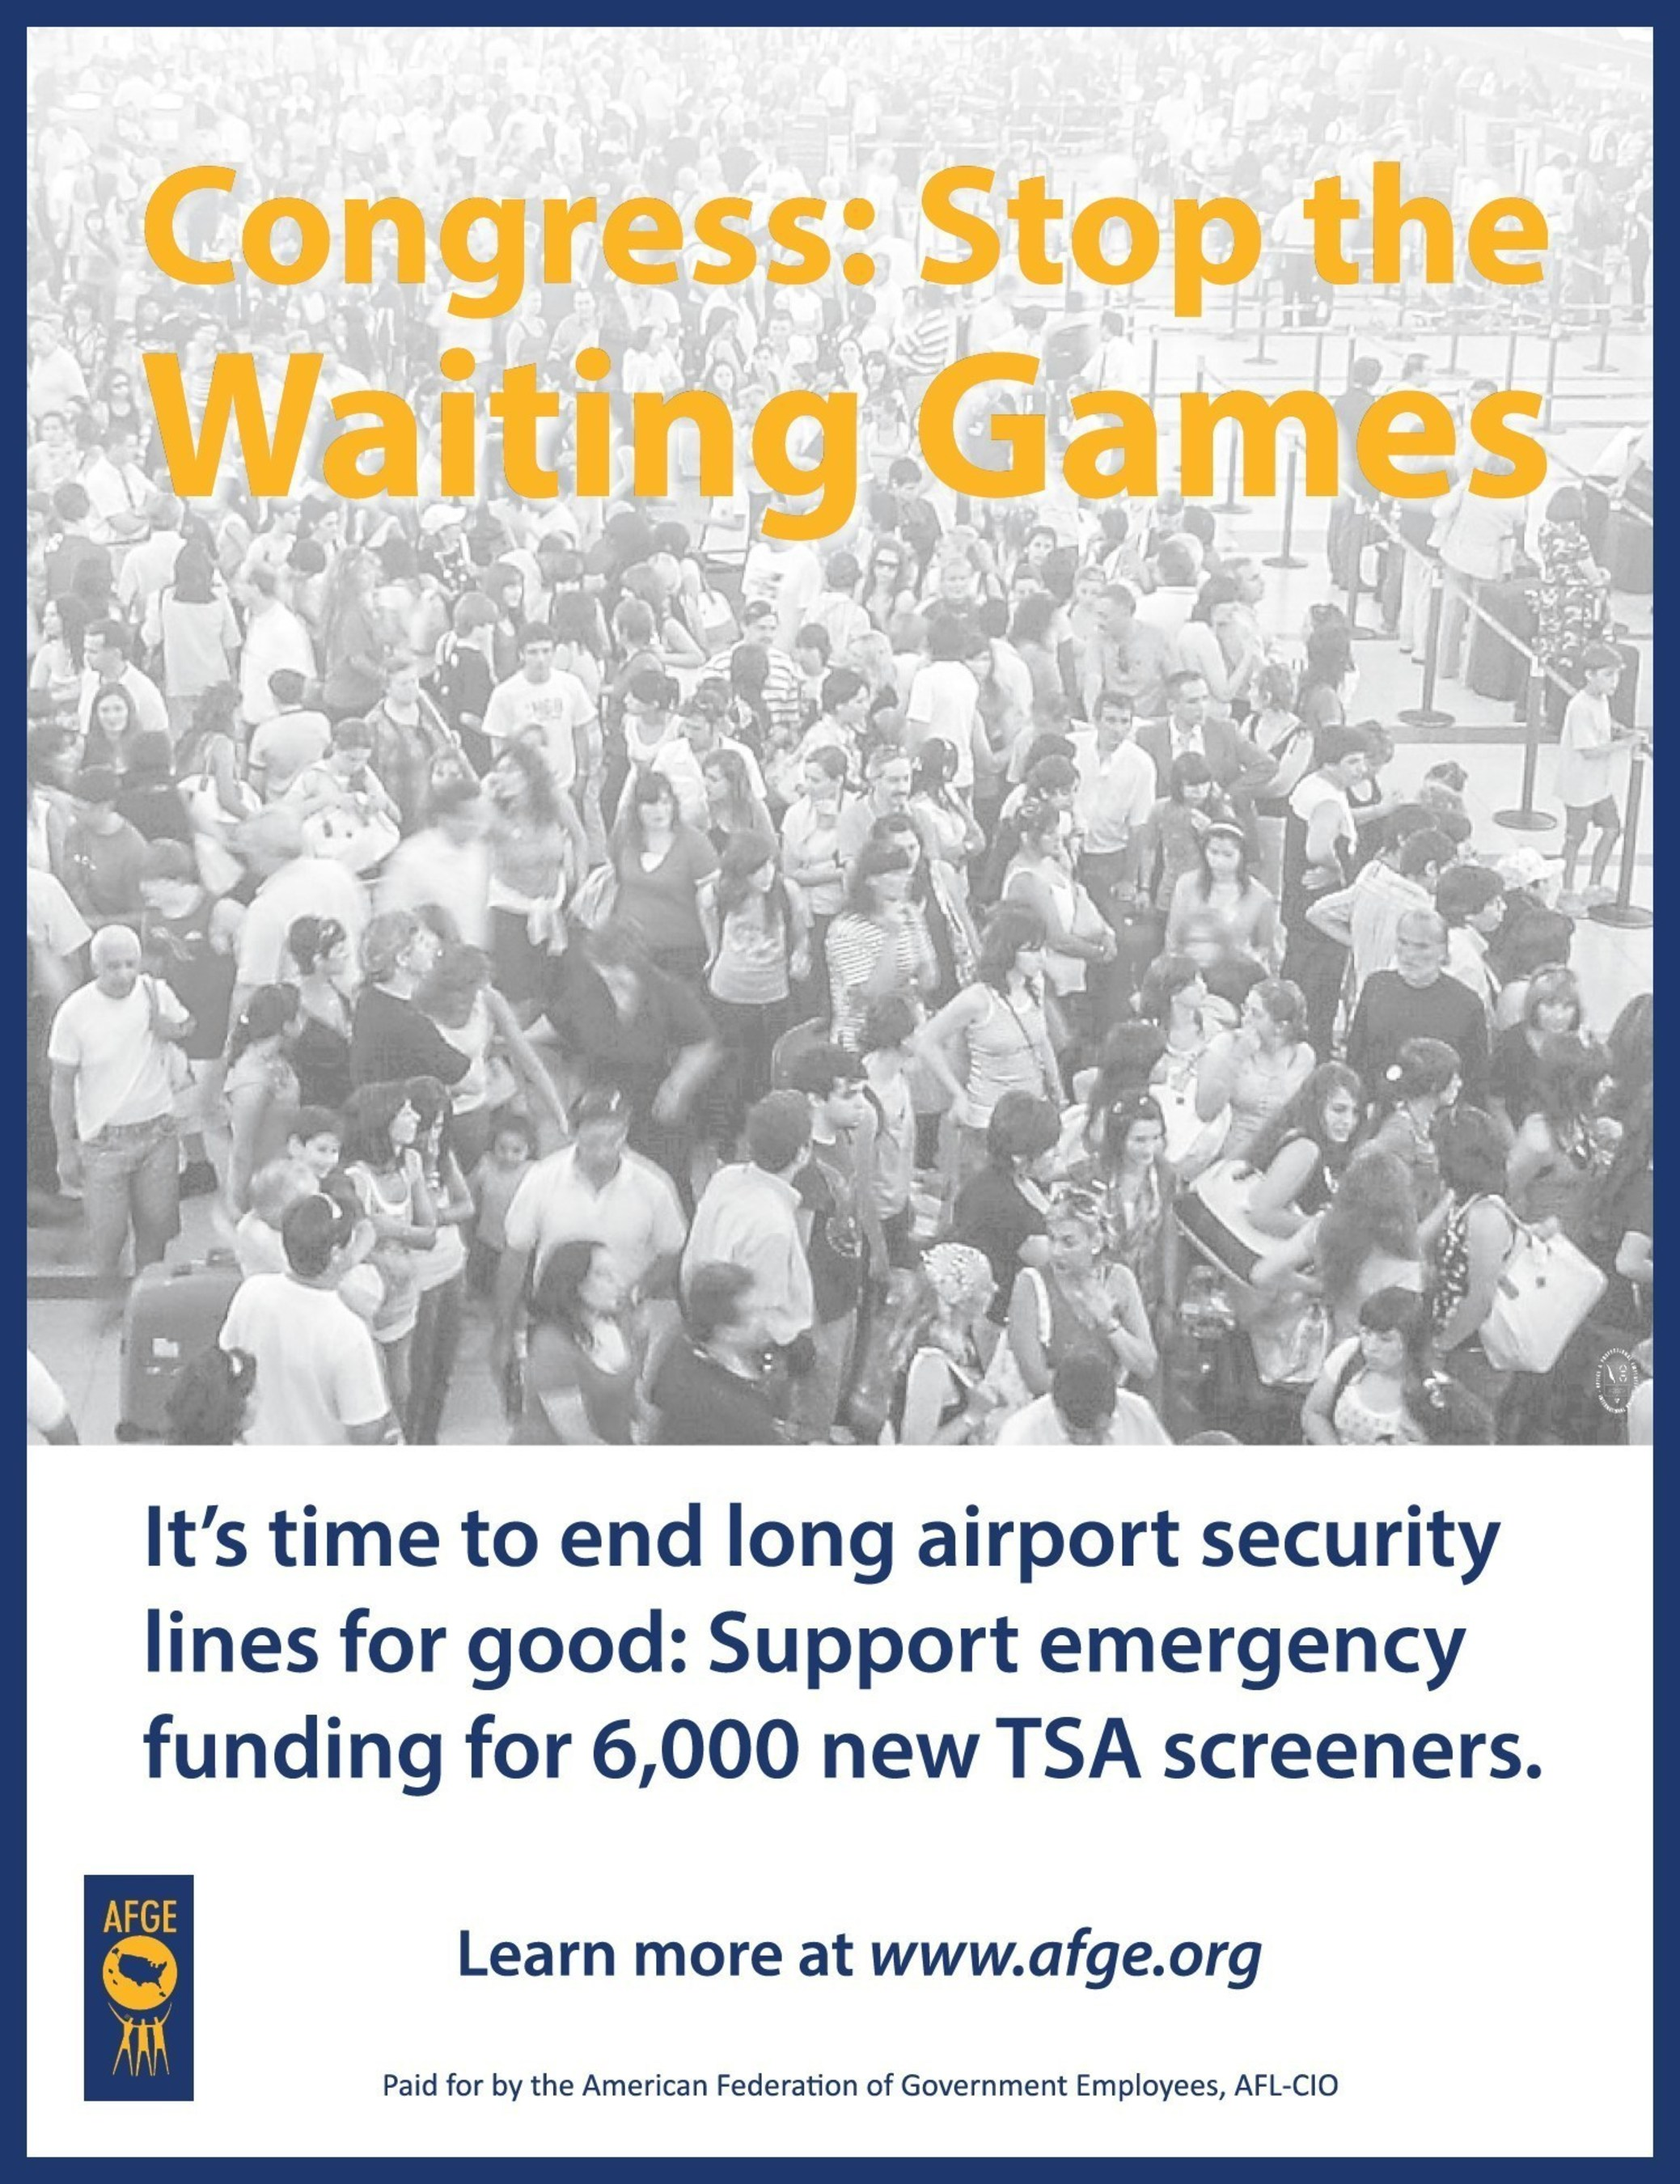 A full-page ad published May 24 in The Hill newspaper calls for Congress to pass emergency legislation funding 6,000 new airport security screeners at the Transportation Security Administration to ease long lines at U.S. airports. The ad was paid for by the American Federation of Government Employees, which represents the 42,000 Transportation Security Officers (TSOs) who currently screen passengers and baggage.